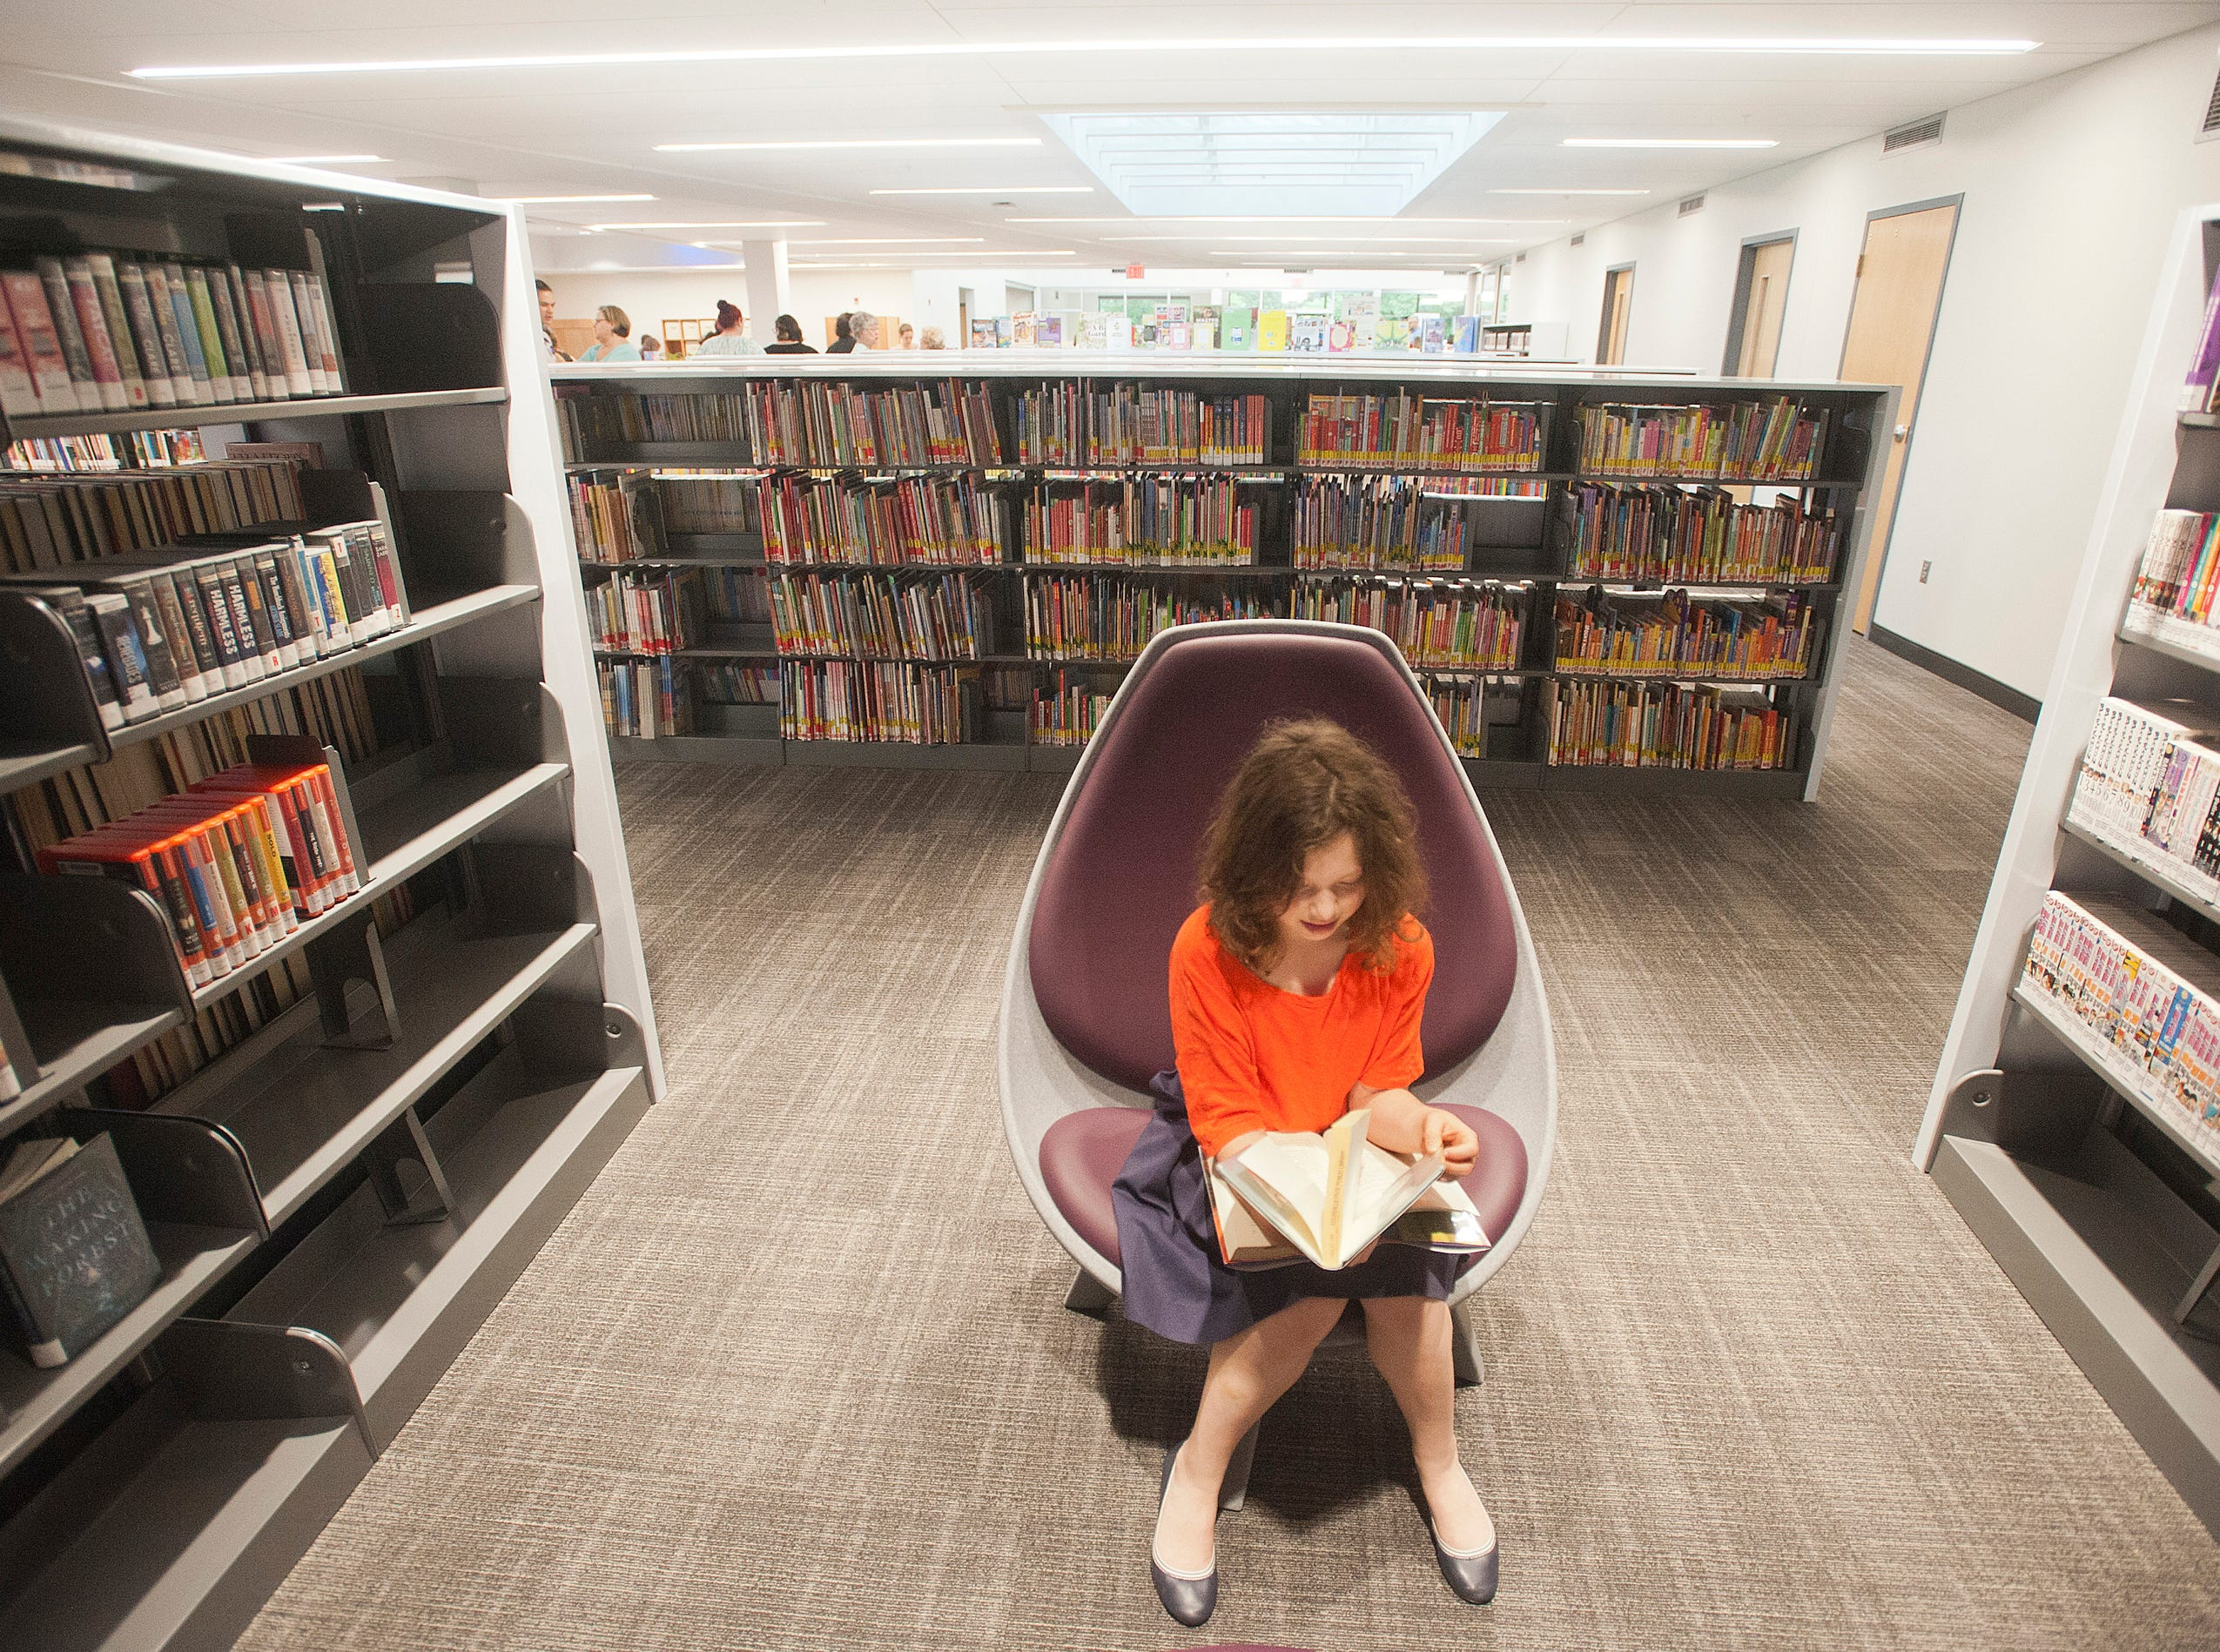 Eleanor Brainard of Crescent Hill, age 10, checks out a book in the teenage section of the new library. May 9, 2019